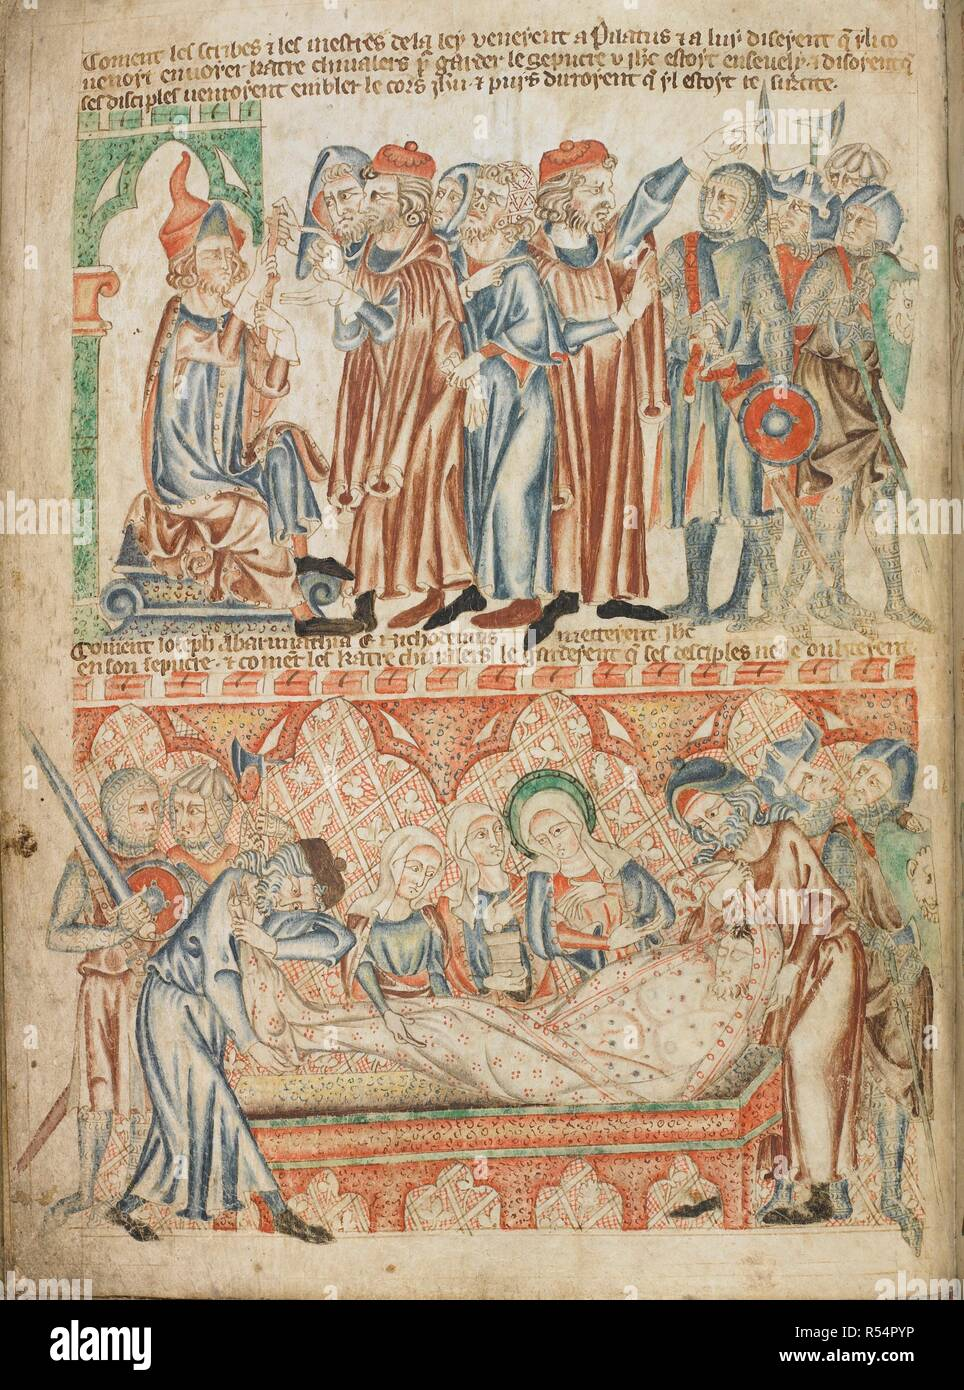 Soldiers are ordered by a man of law to guard the tomb; Christ's body is wrapped in a shroud and laid in the tomb. Holkham Bible Picture Book. England, circa 1320-1330. Source: Add. 47682, f.33v. - Stock Image